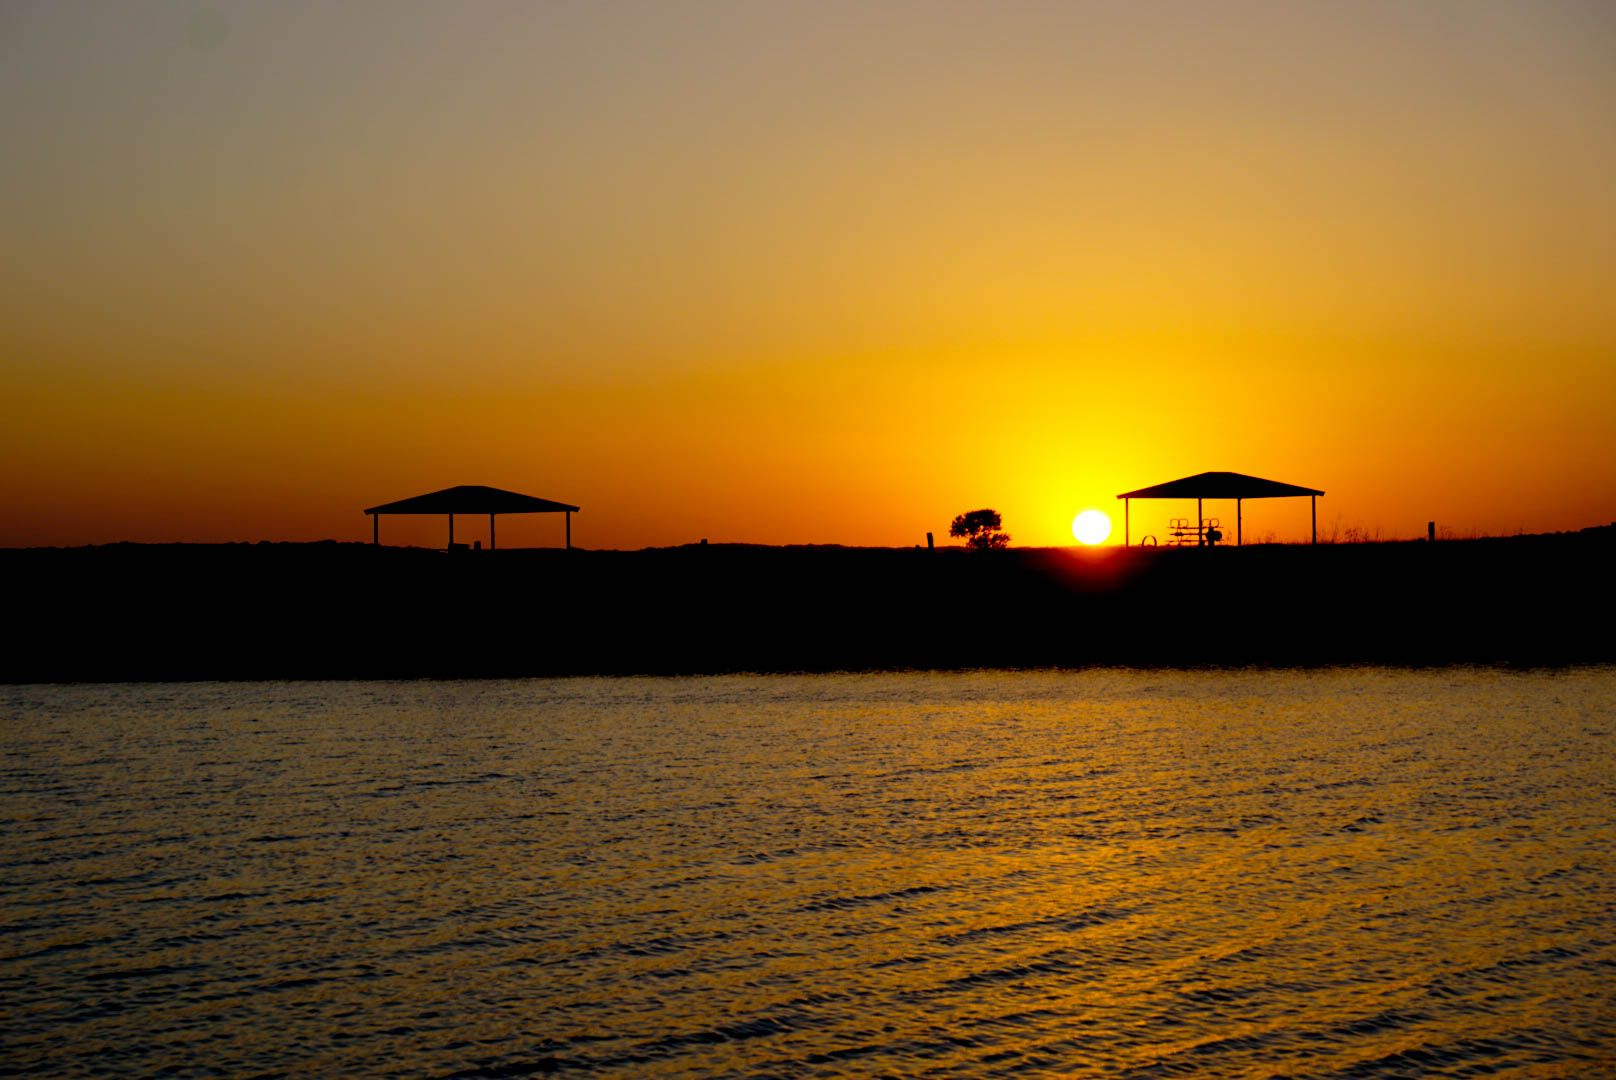 Canyon Lake, Texas  There's nothing better than a sunset and water together.   (All photographs are copyright encrypted)